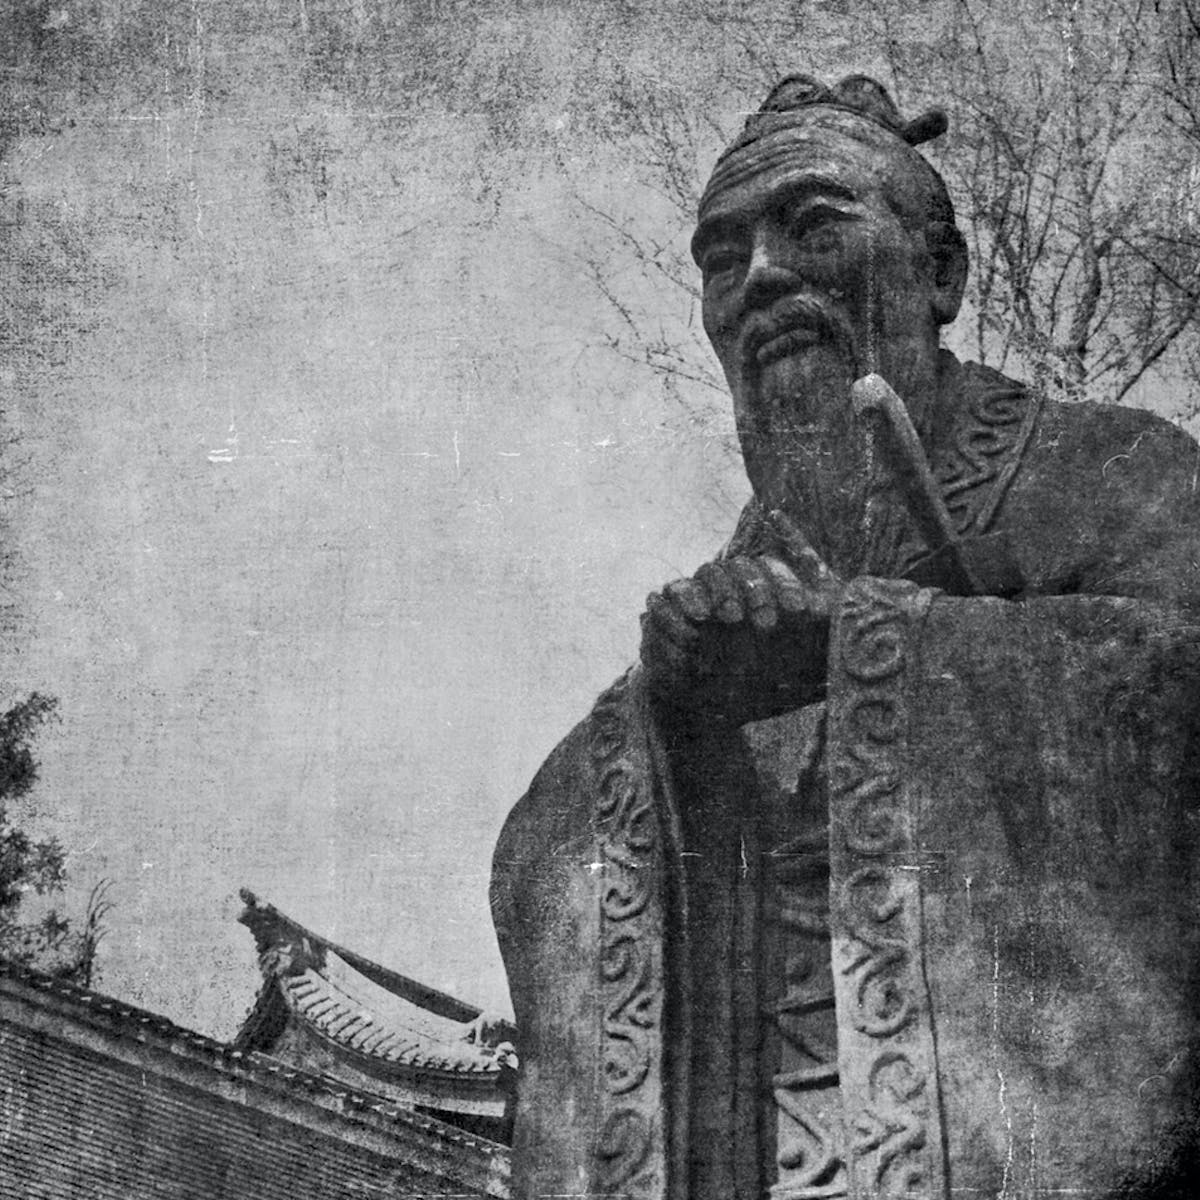 Confucius has a message for business leaders who want to